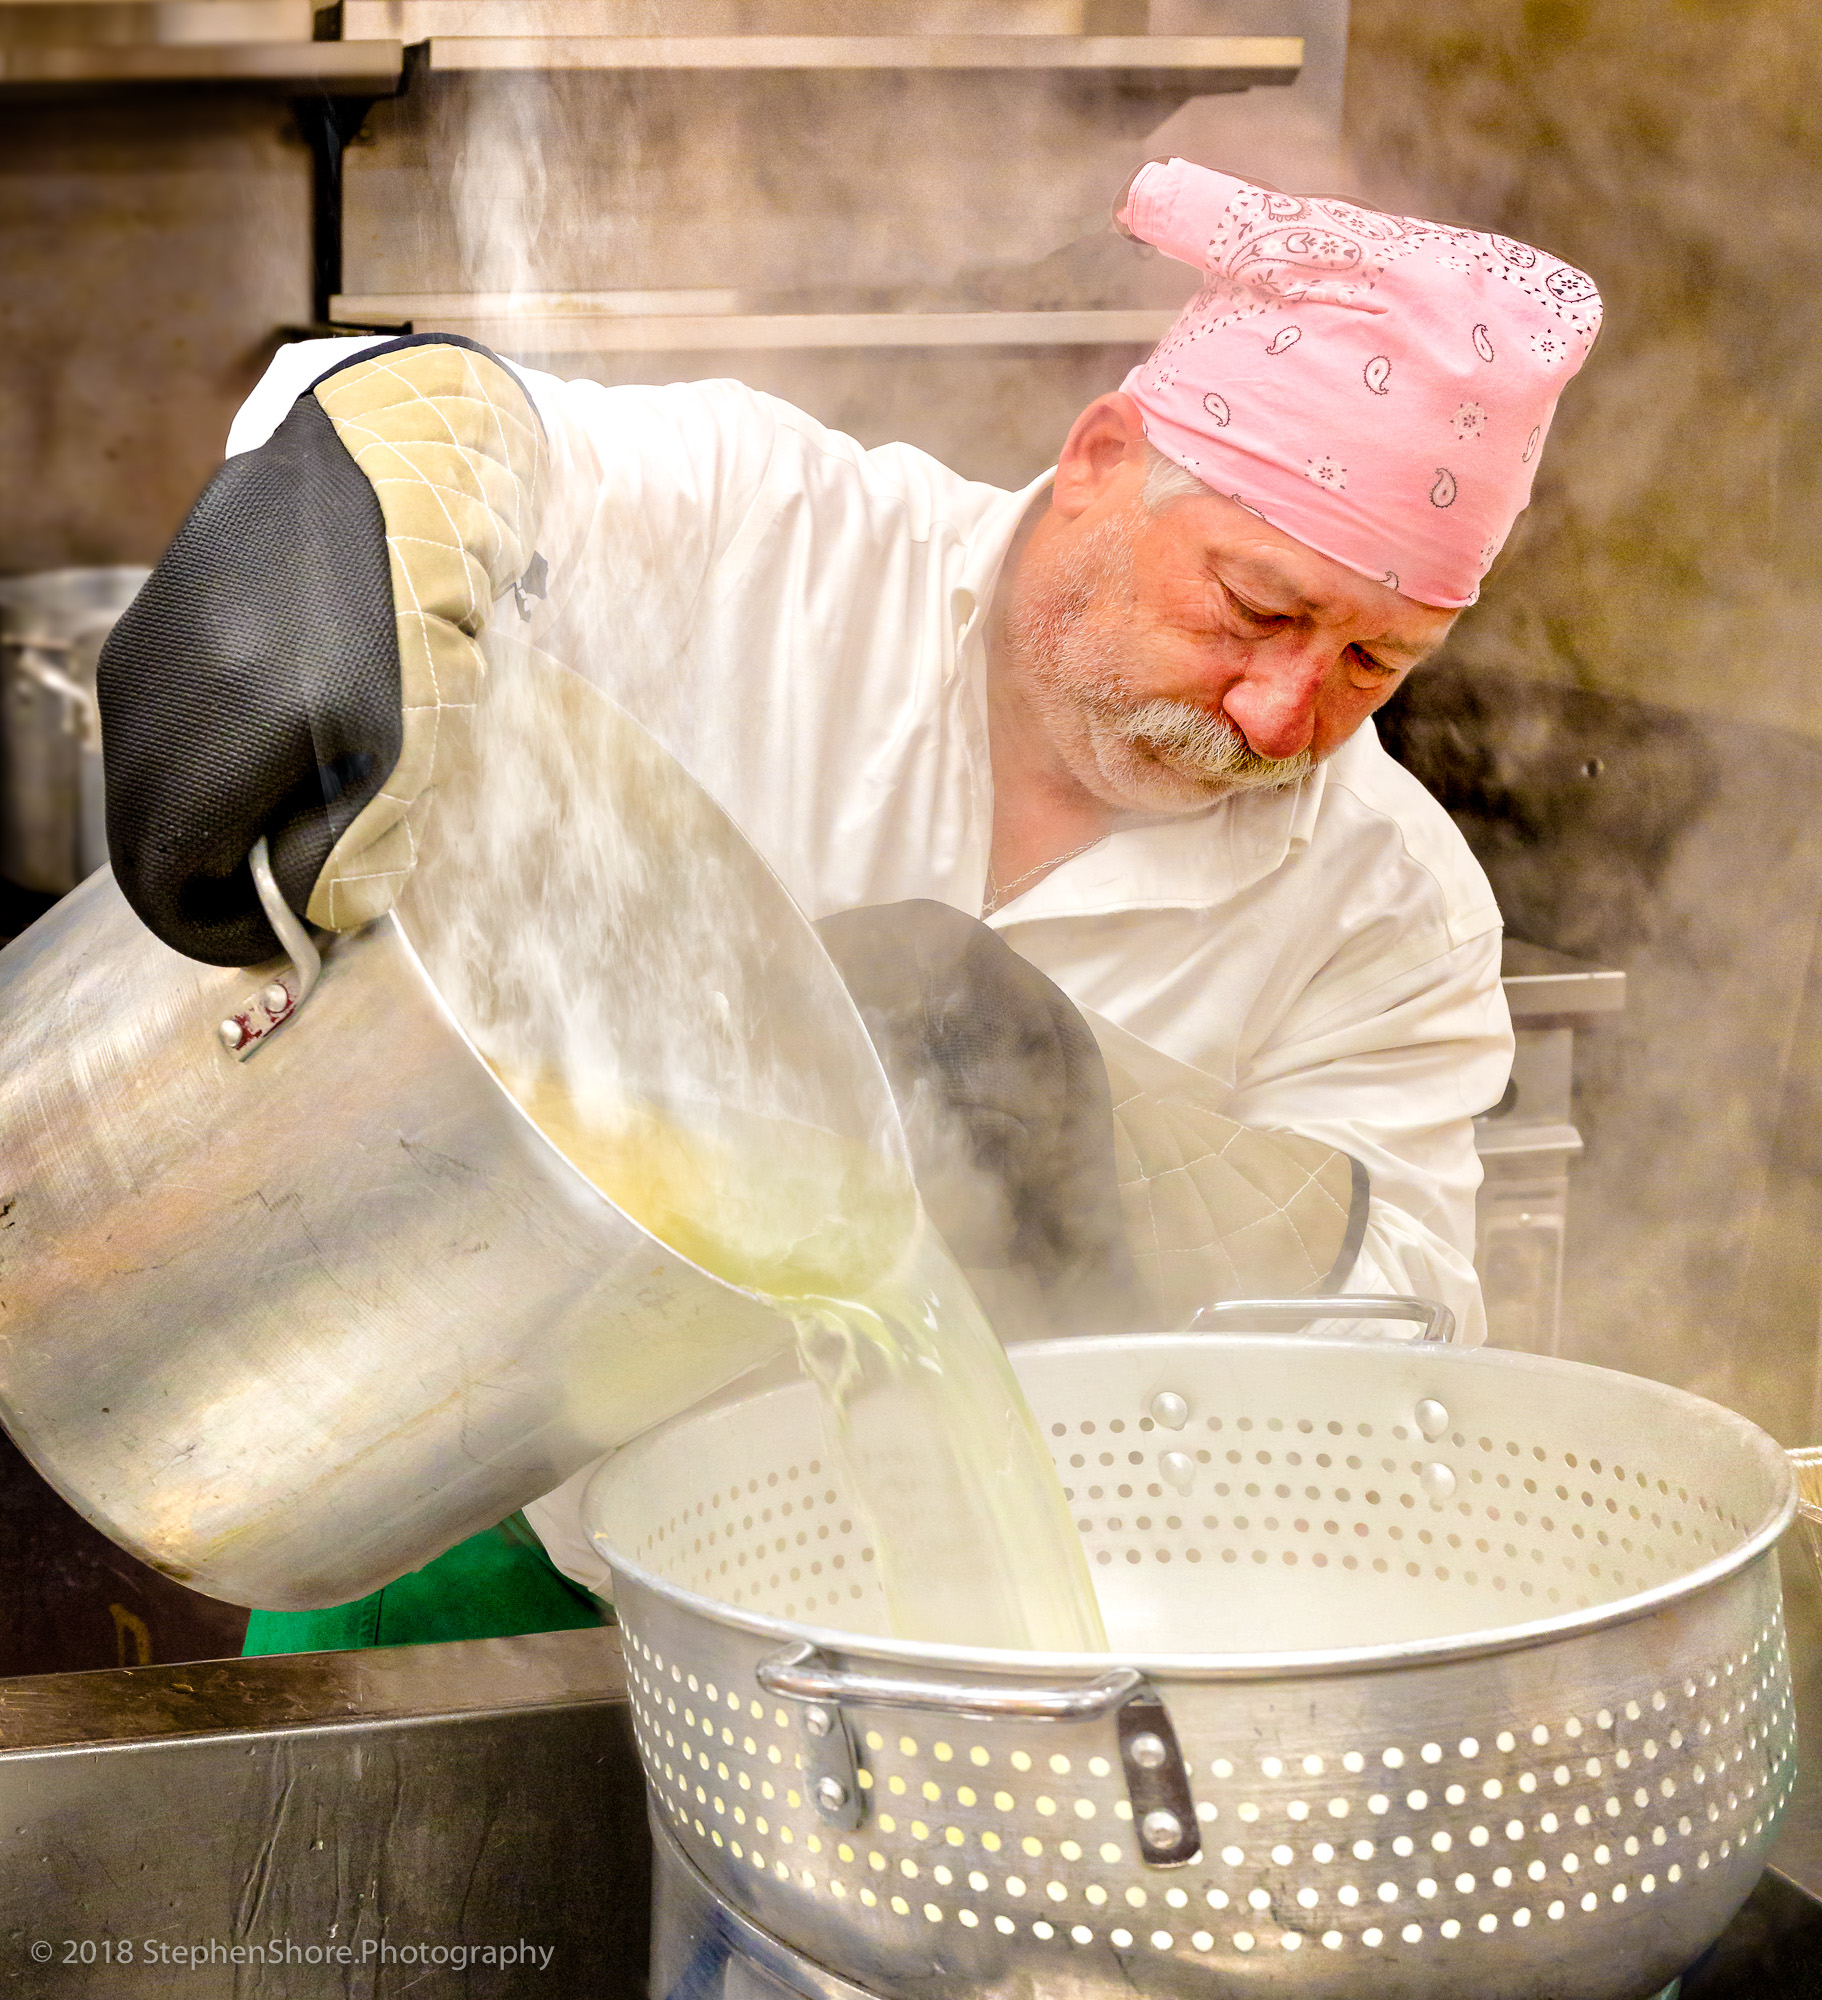 Mitzvah Cooking - Providing hot meals for local homes and shelters